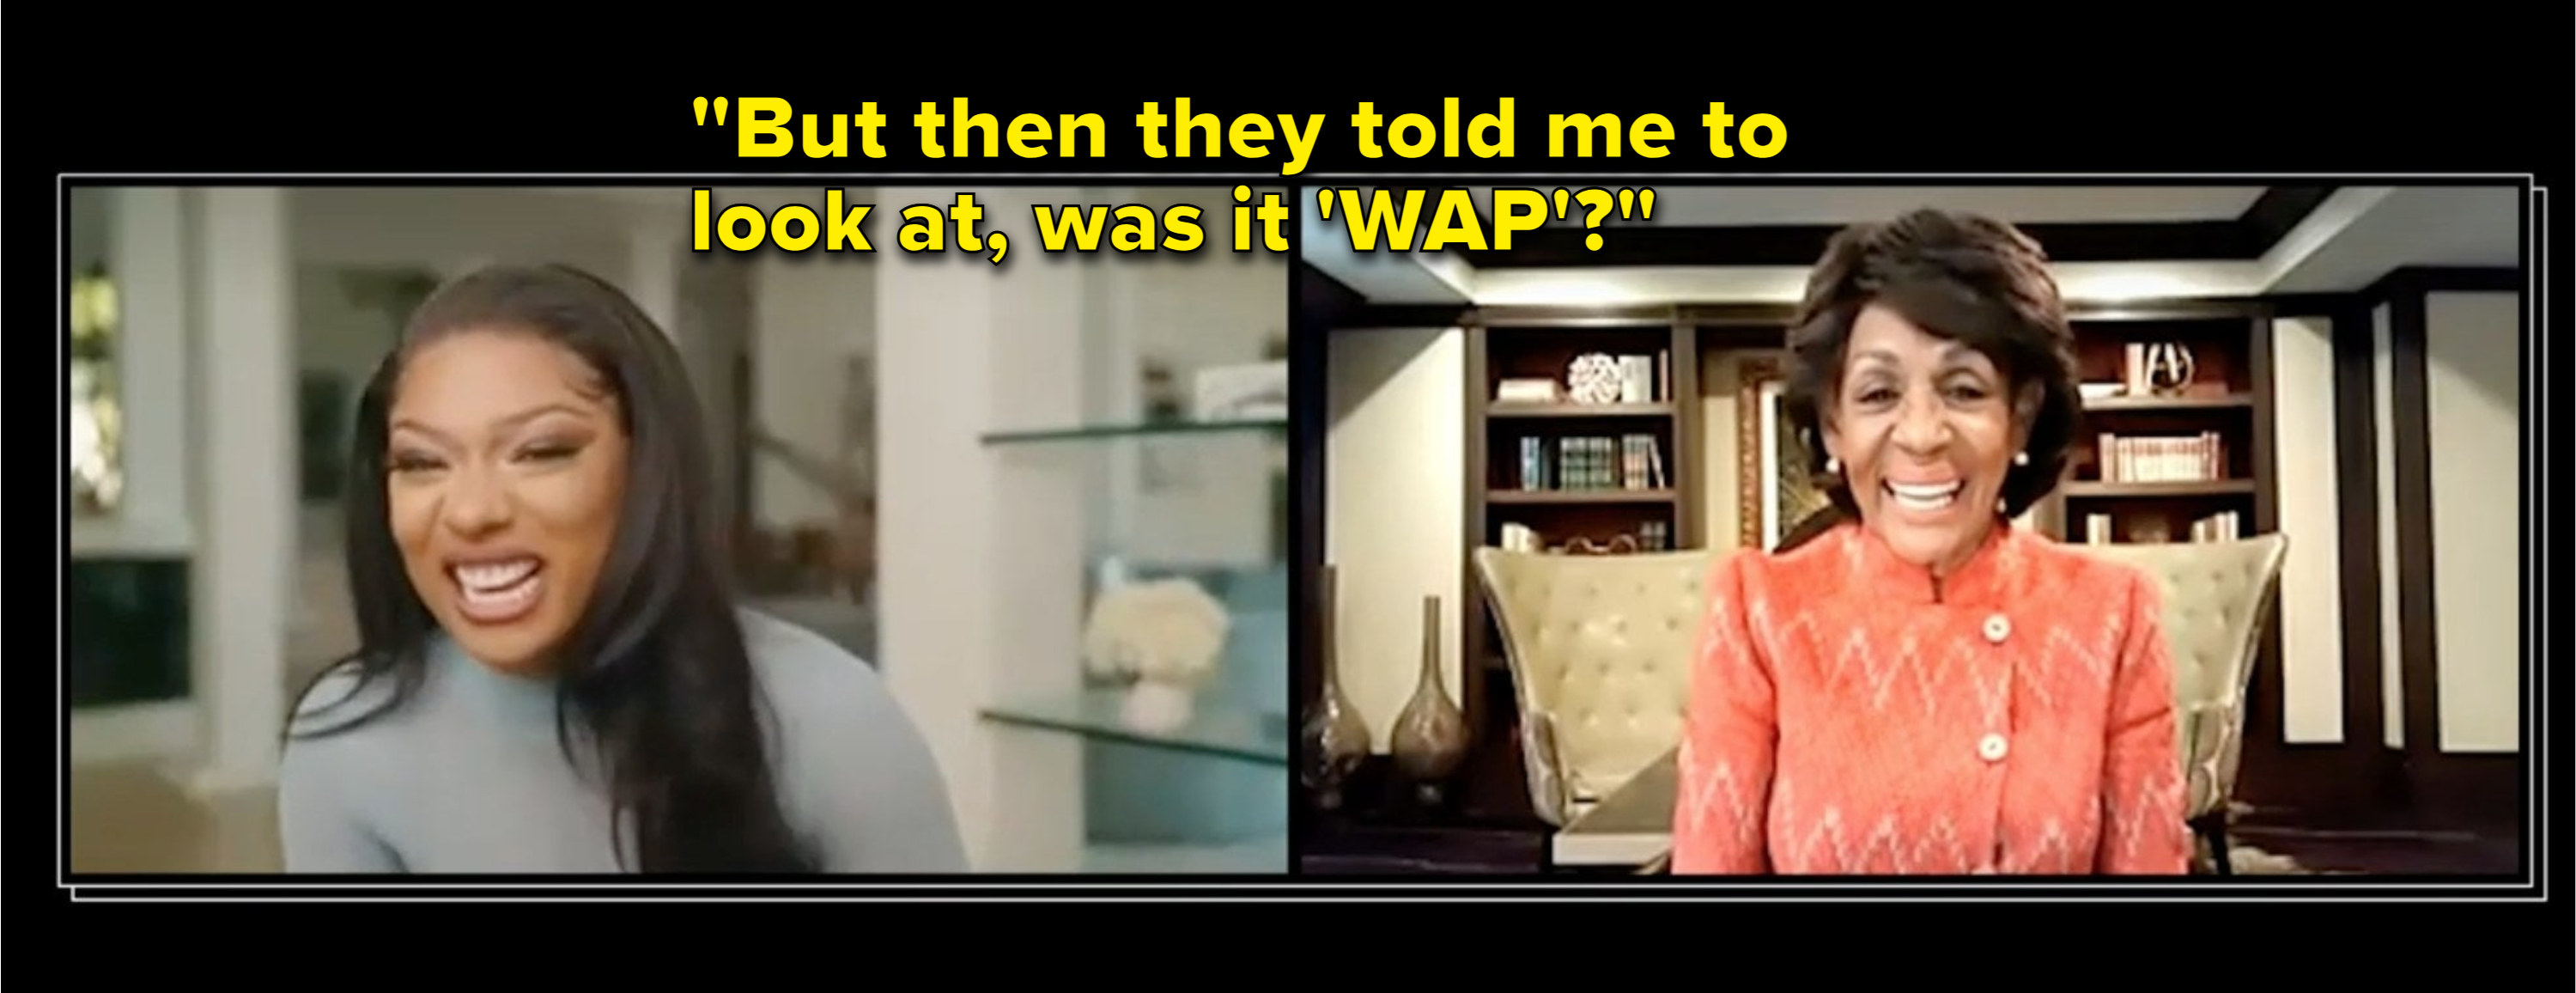 """Maxine saying to Megan, """"But then they told me to look at, was it 'WAP'?"""" during video chat"""